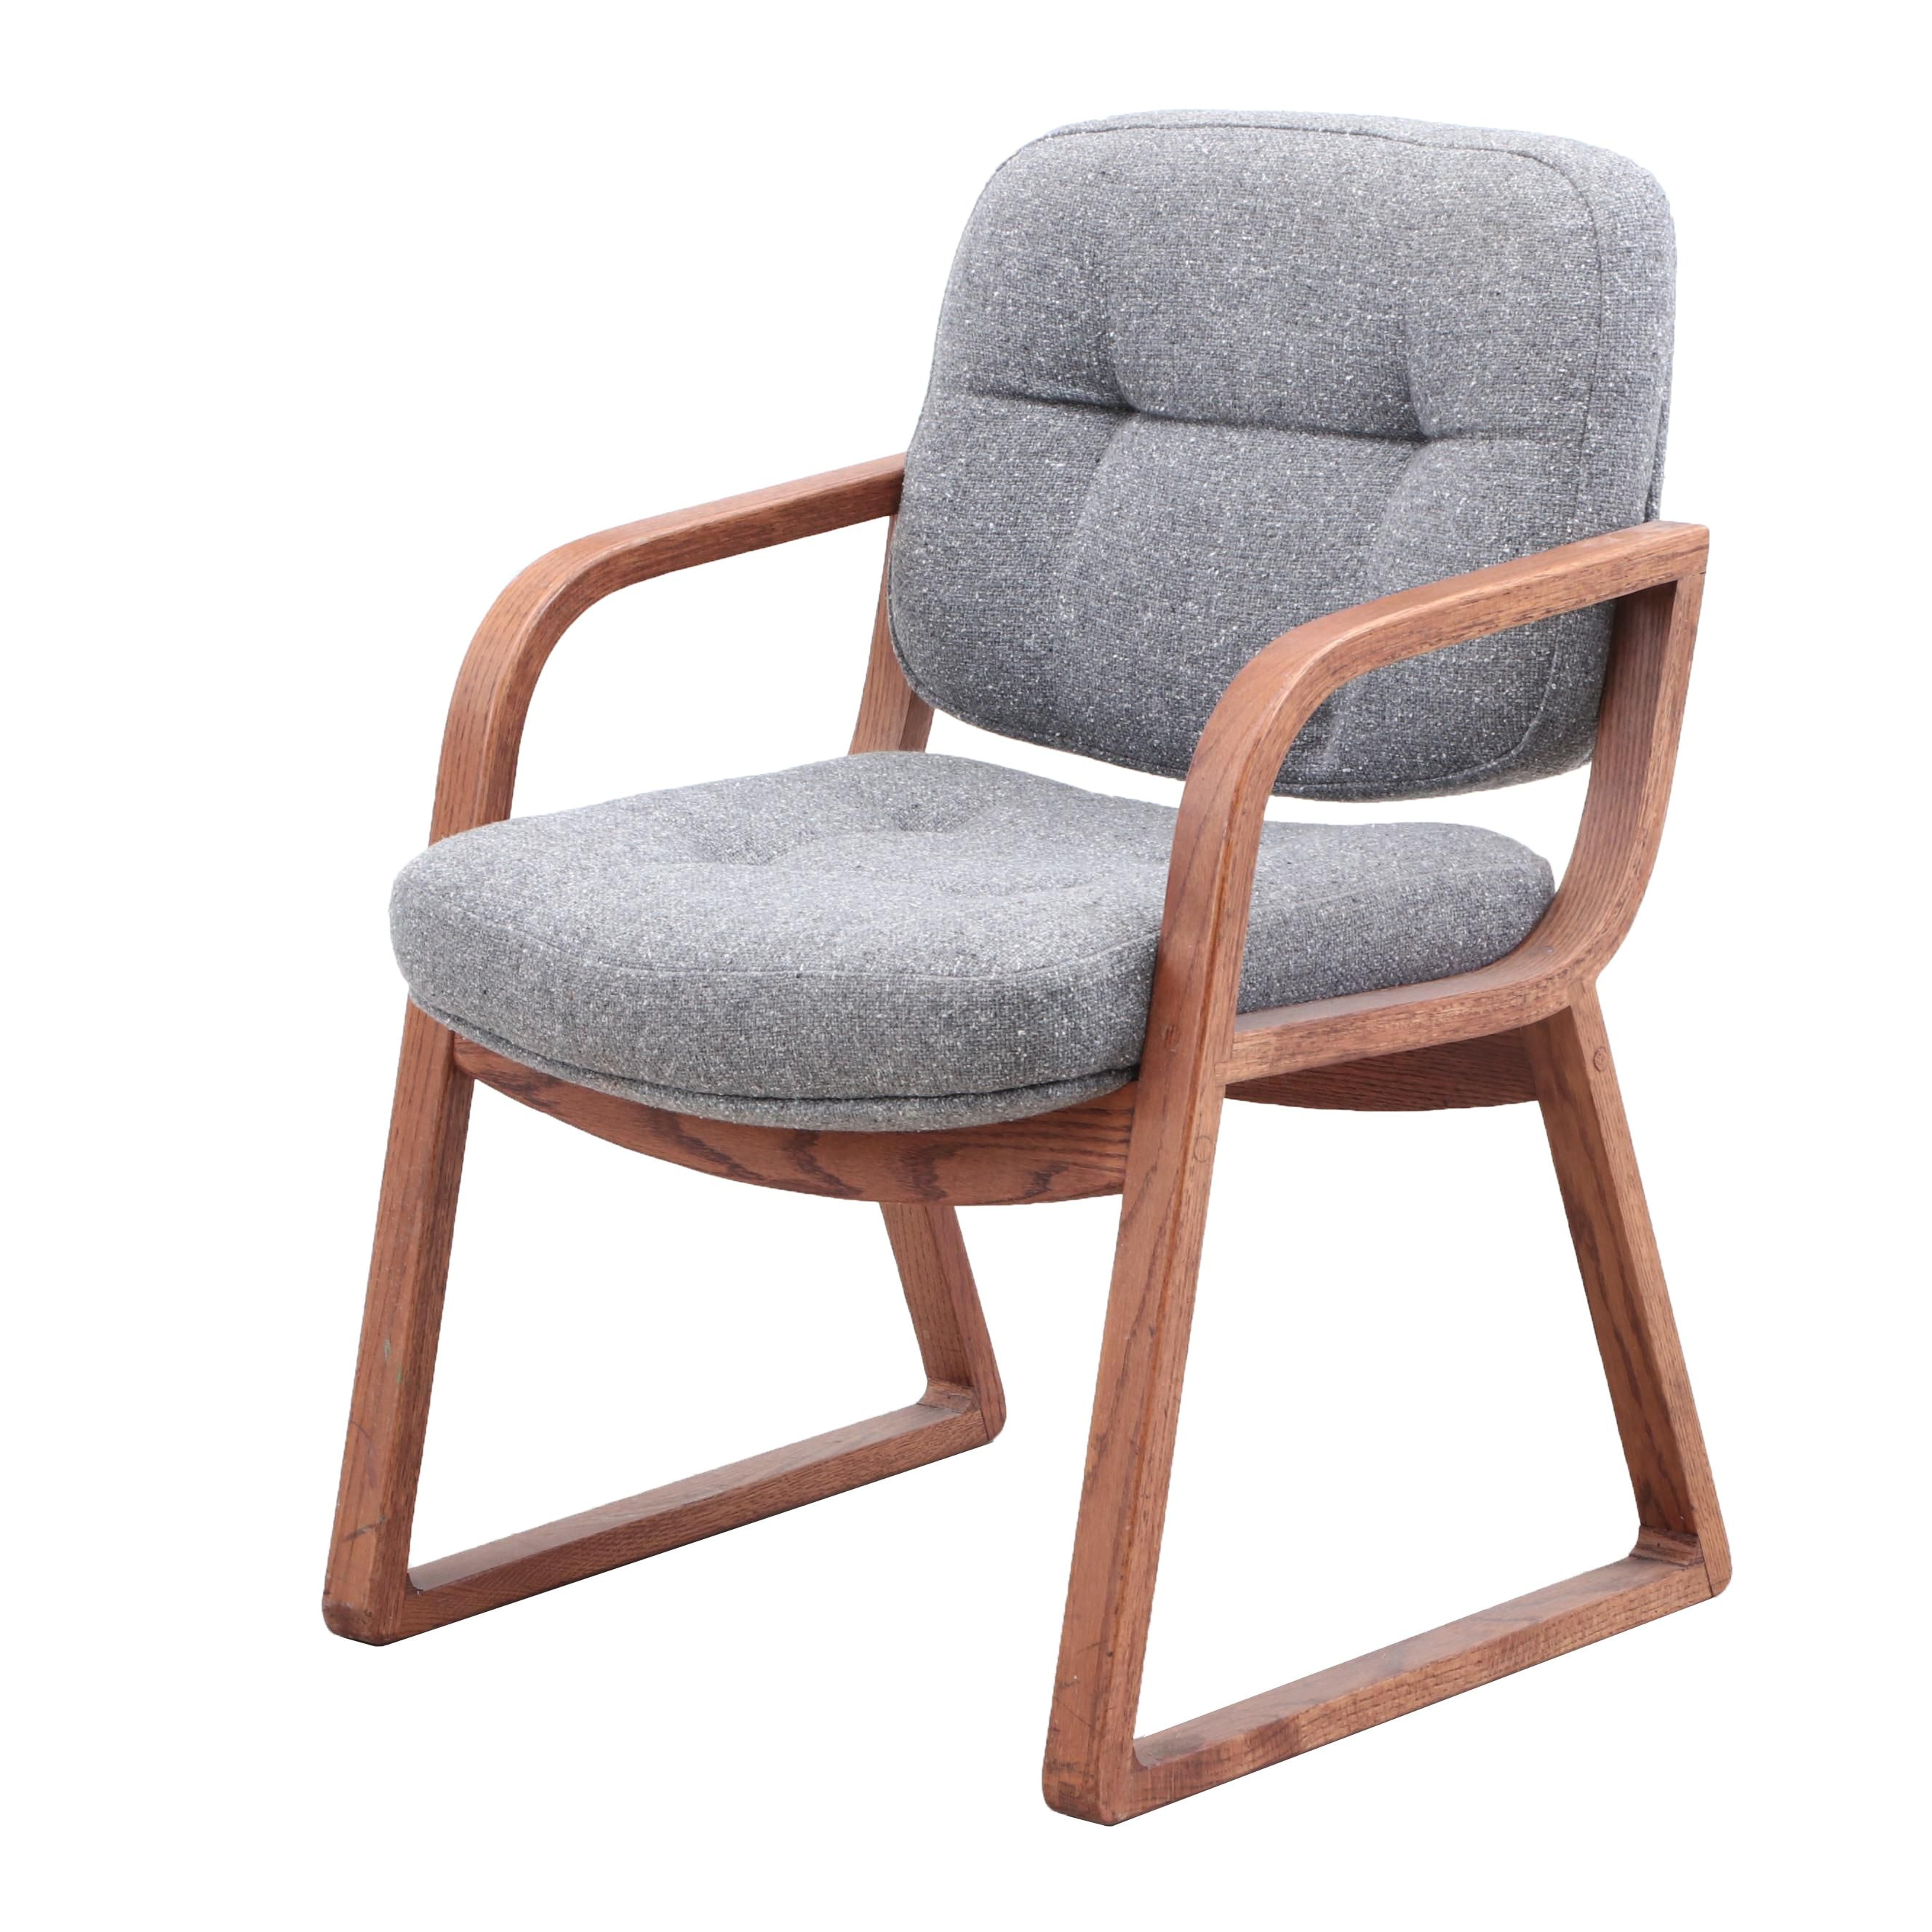 Mid Century Modern Hon Company Upholstered Walnut Arm Chair, Mid 20th Century